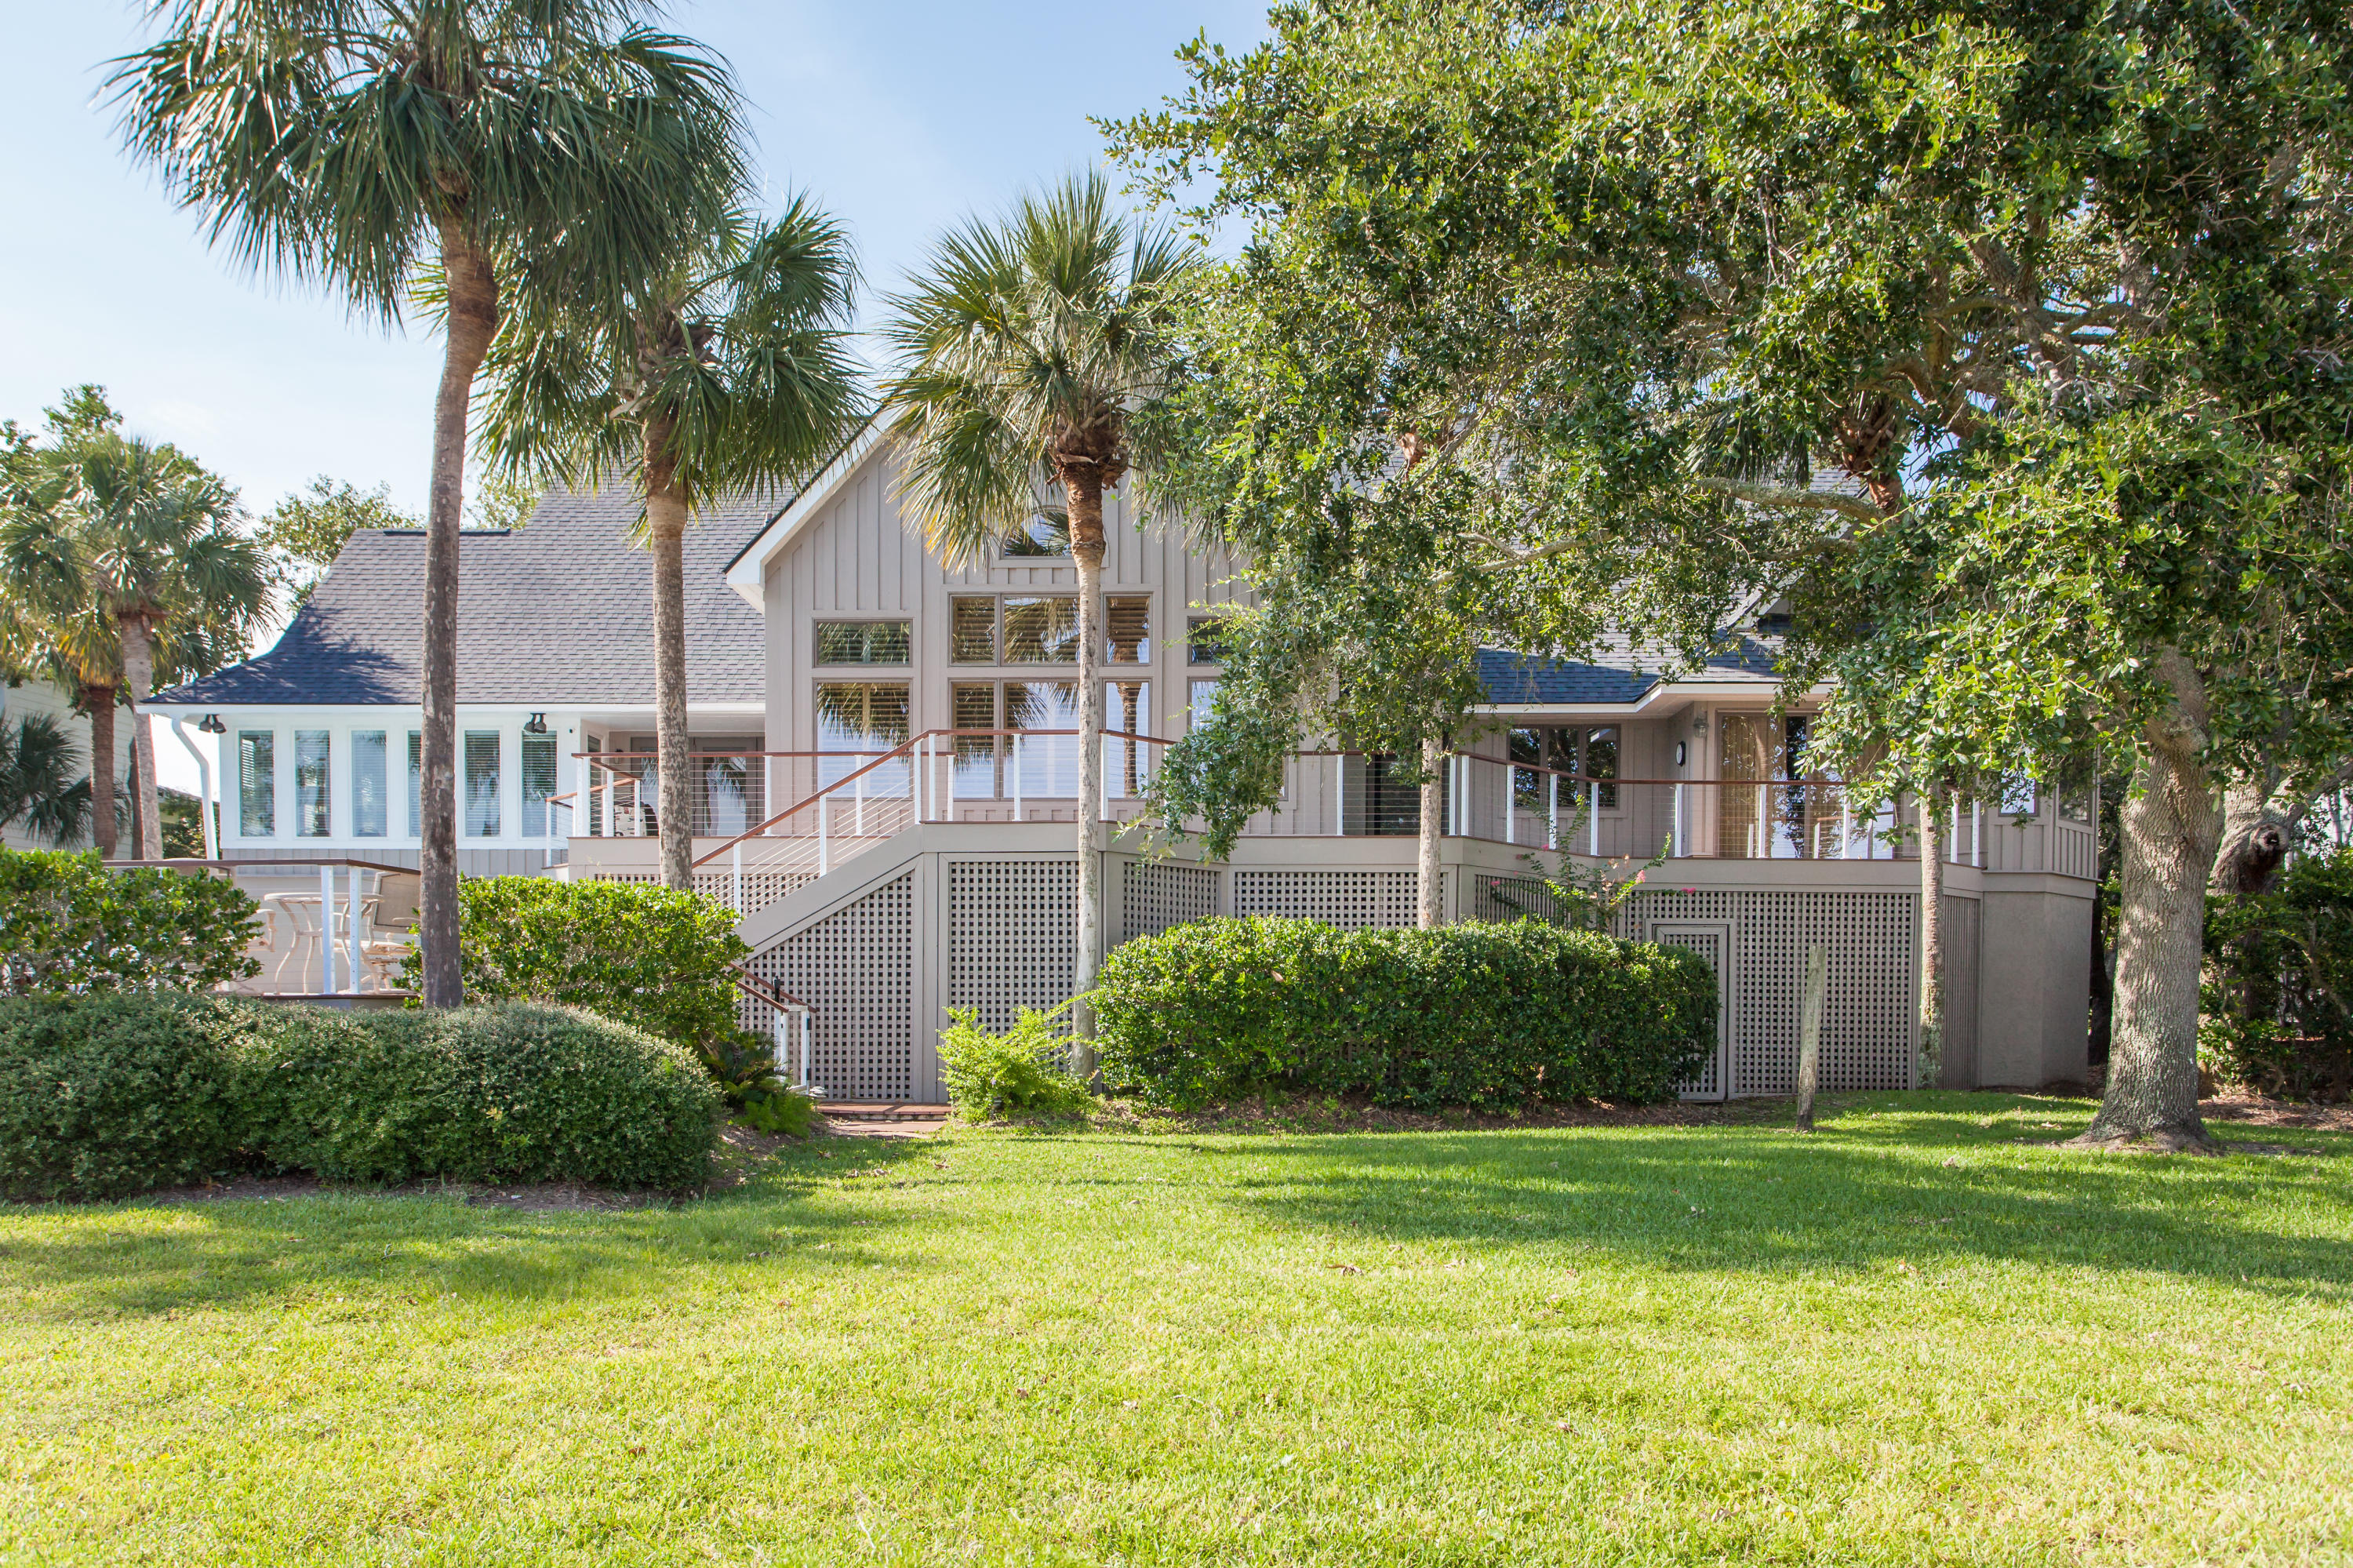 Wild Dunes Homes For Sale - 47 Waterway Island, Isle of Palms, SC - 38